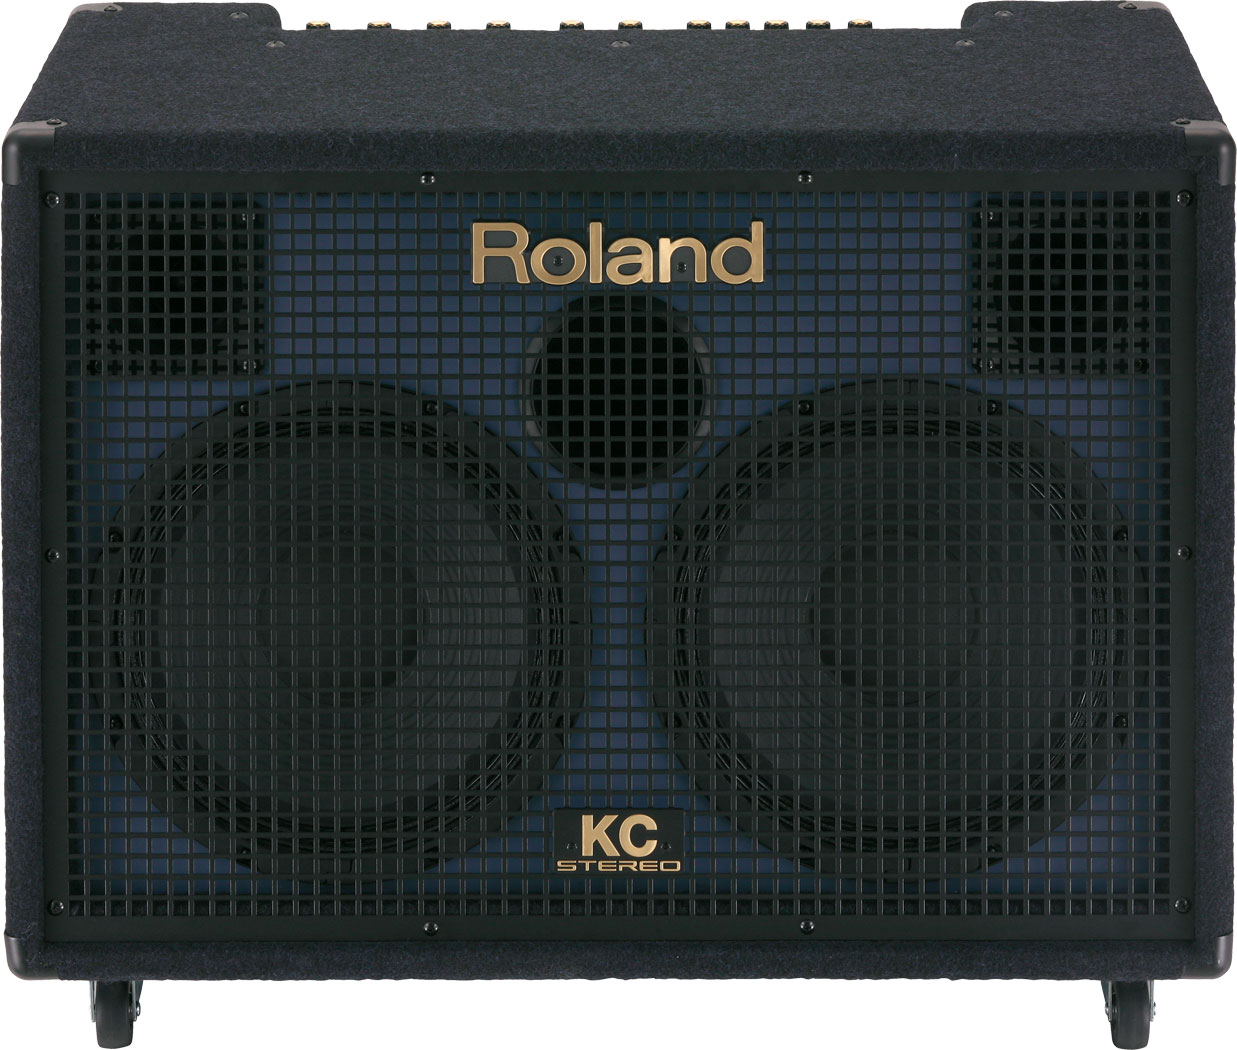 Roland Kc 880 Stereo Mixing Keyboard Amplifier Guitar Or Music Home Powered Subwoofer